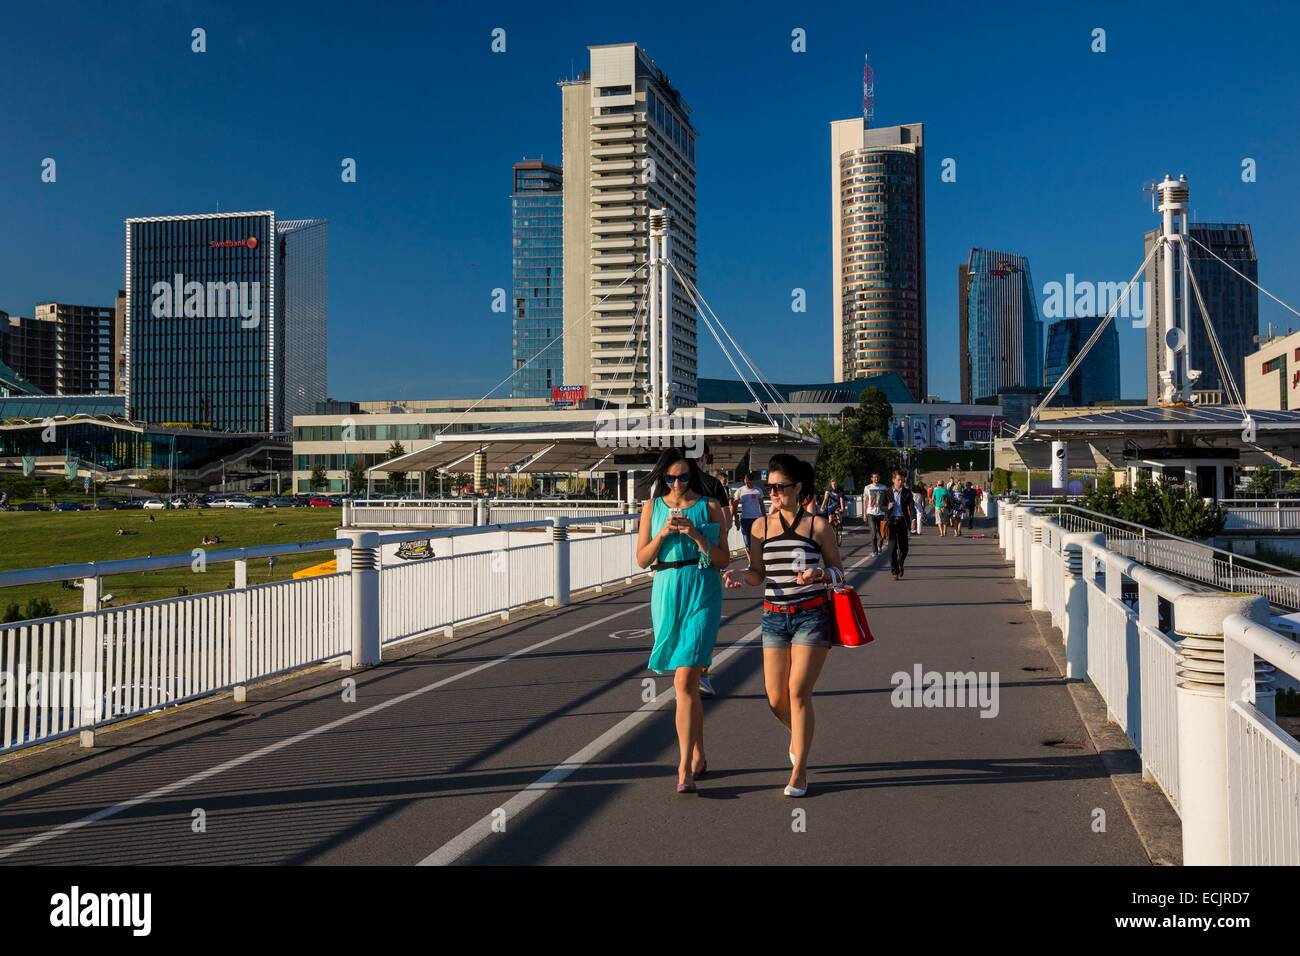 Lithuania (Baltic States), Vilnius, the new town since the White Bridge over the Neris - Stock Image